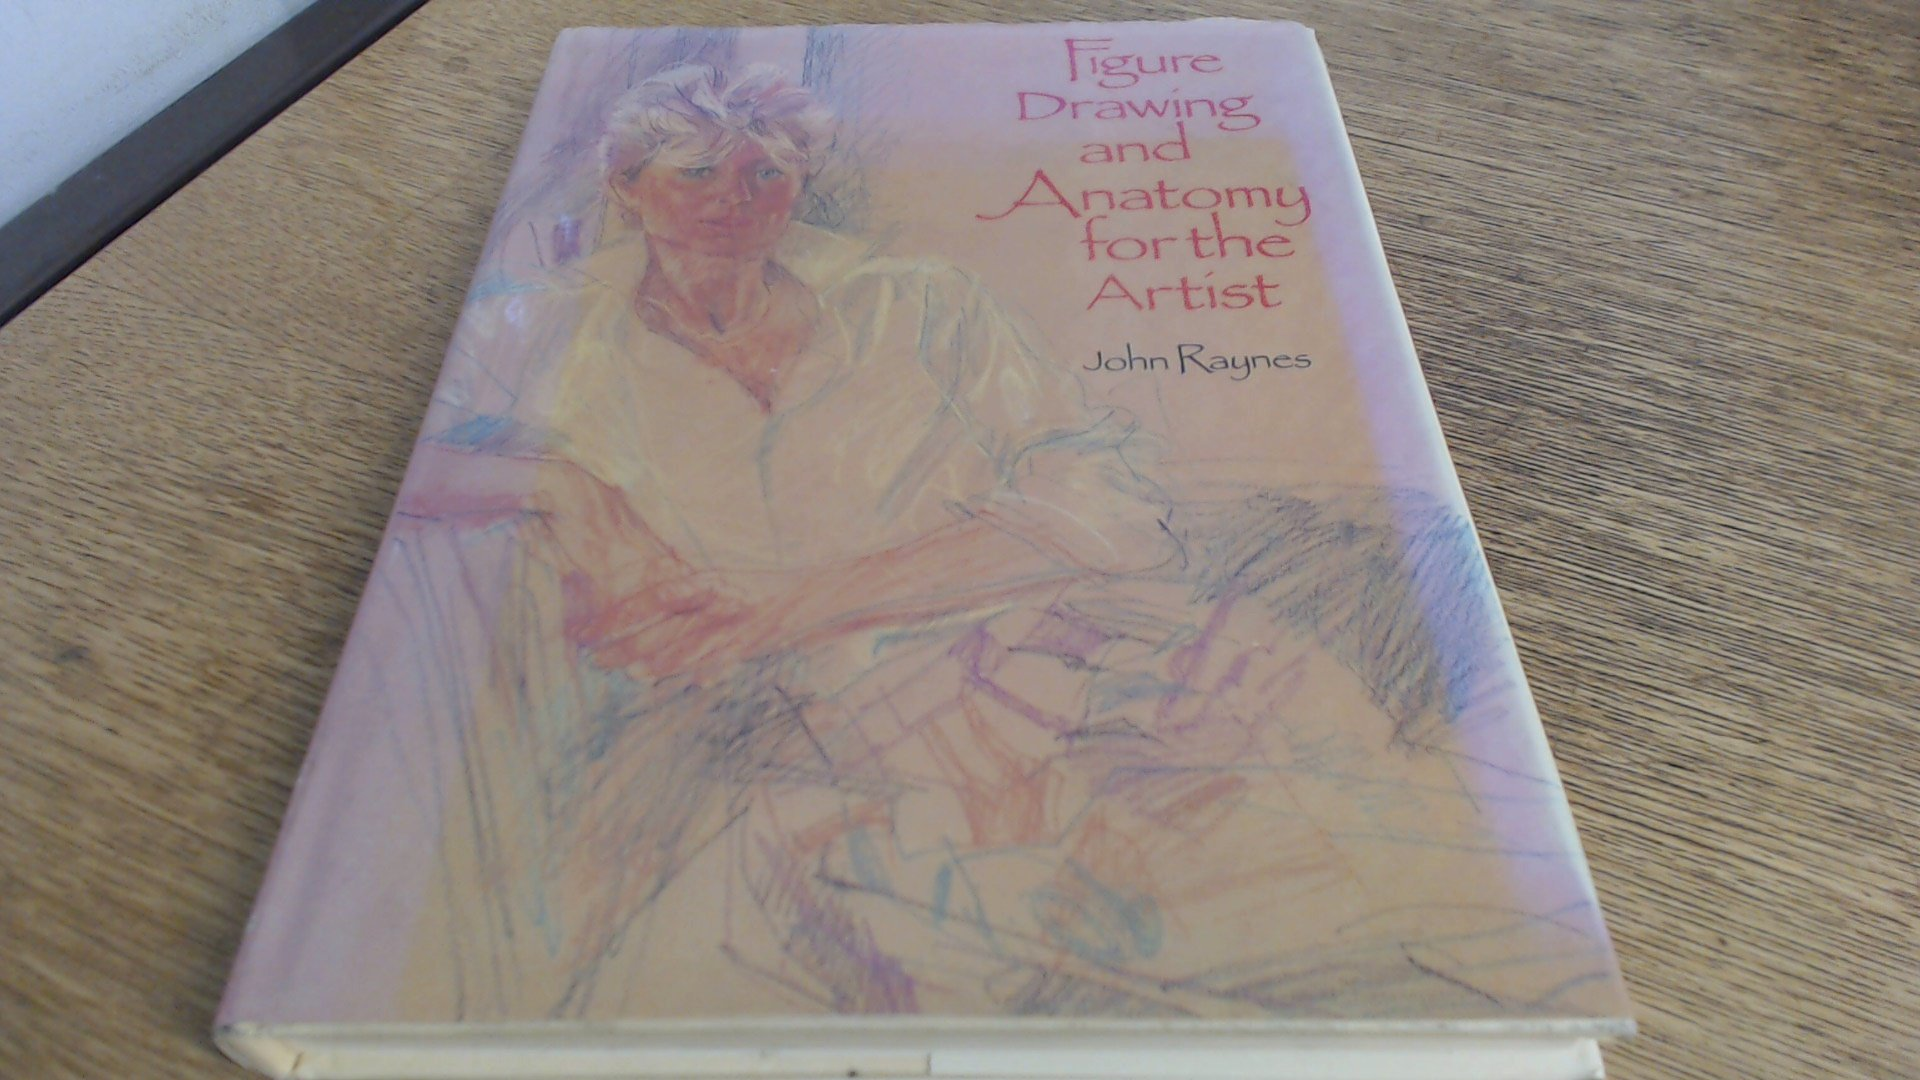 Figure Drawing And Anatomy For The Artist John Raynes